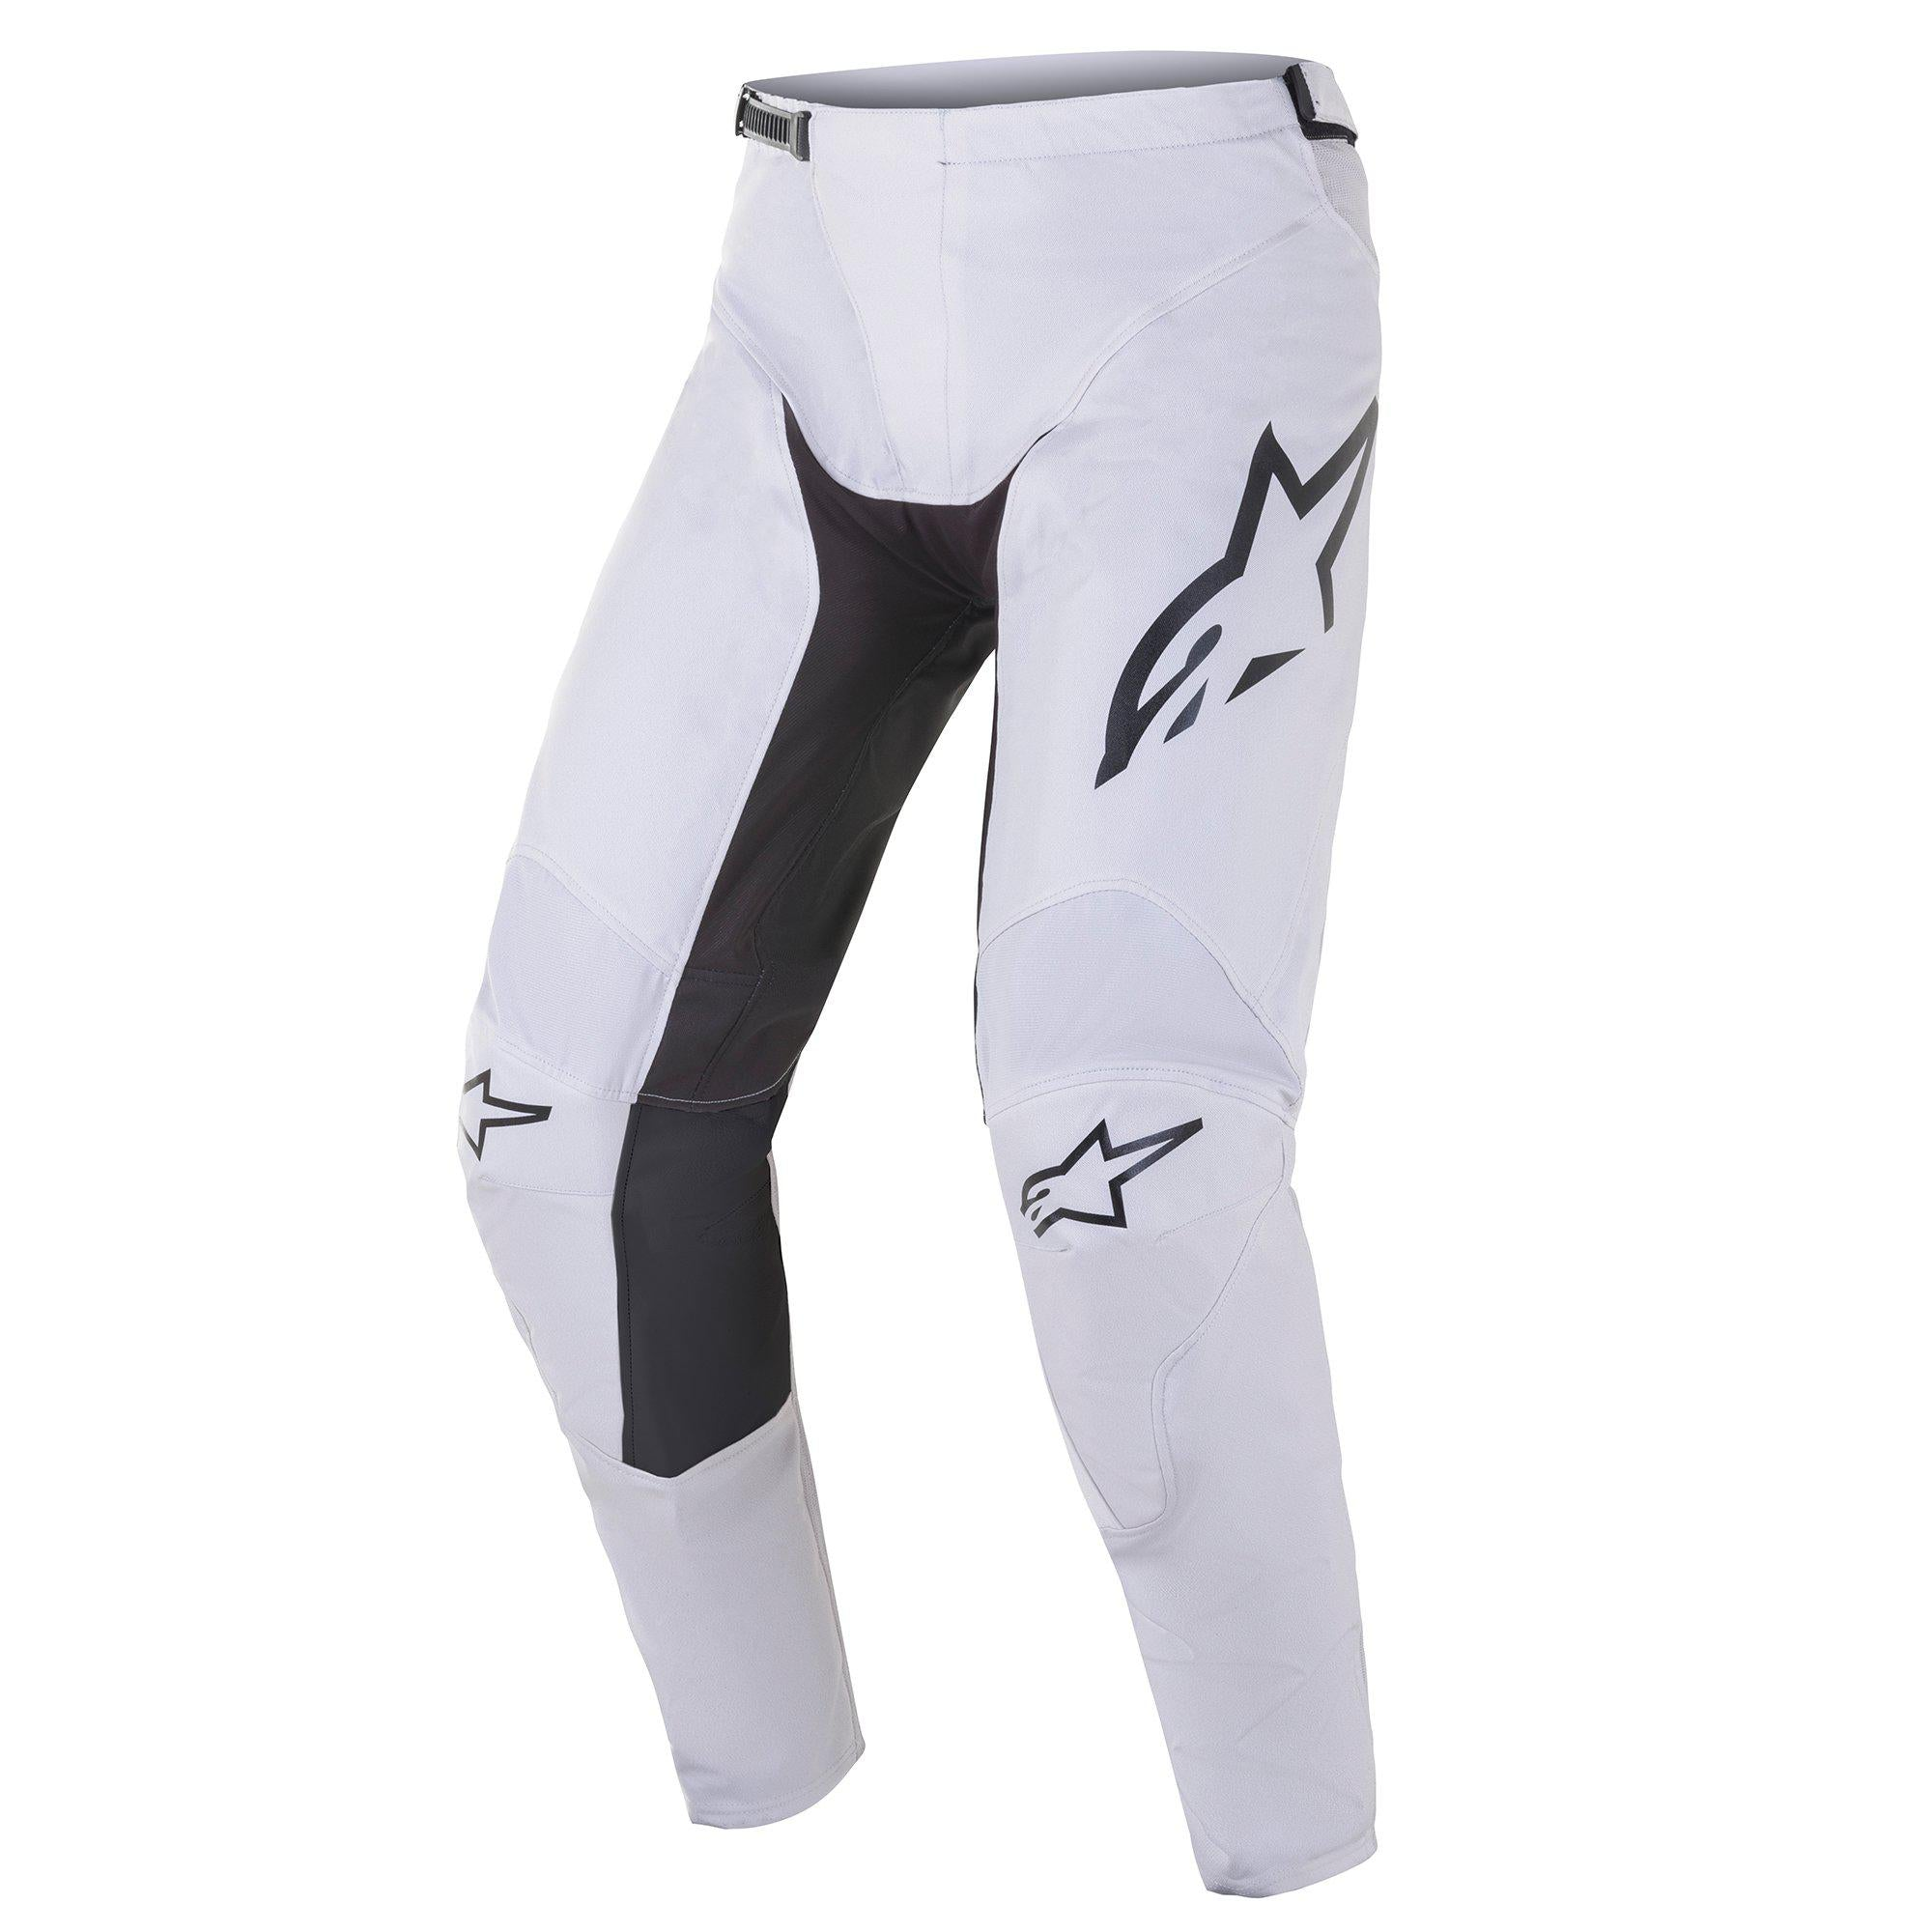 2021 Racer Supermatic Pants